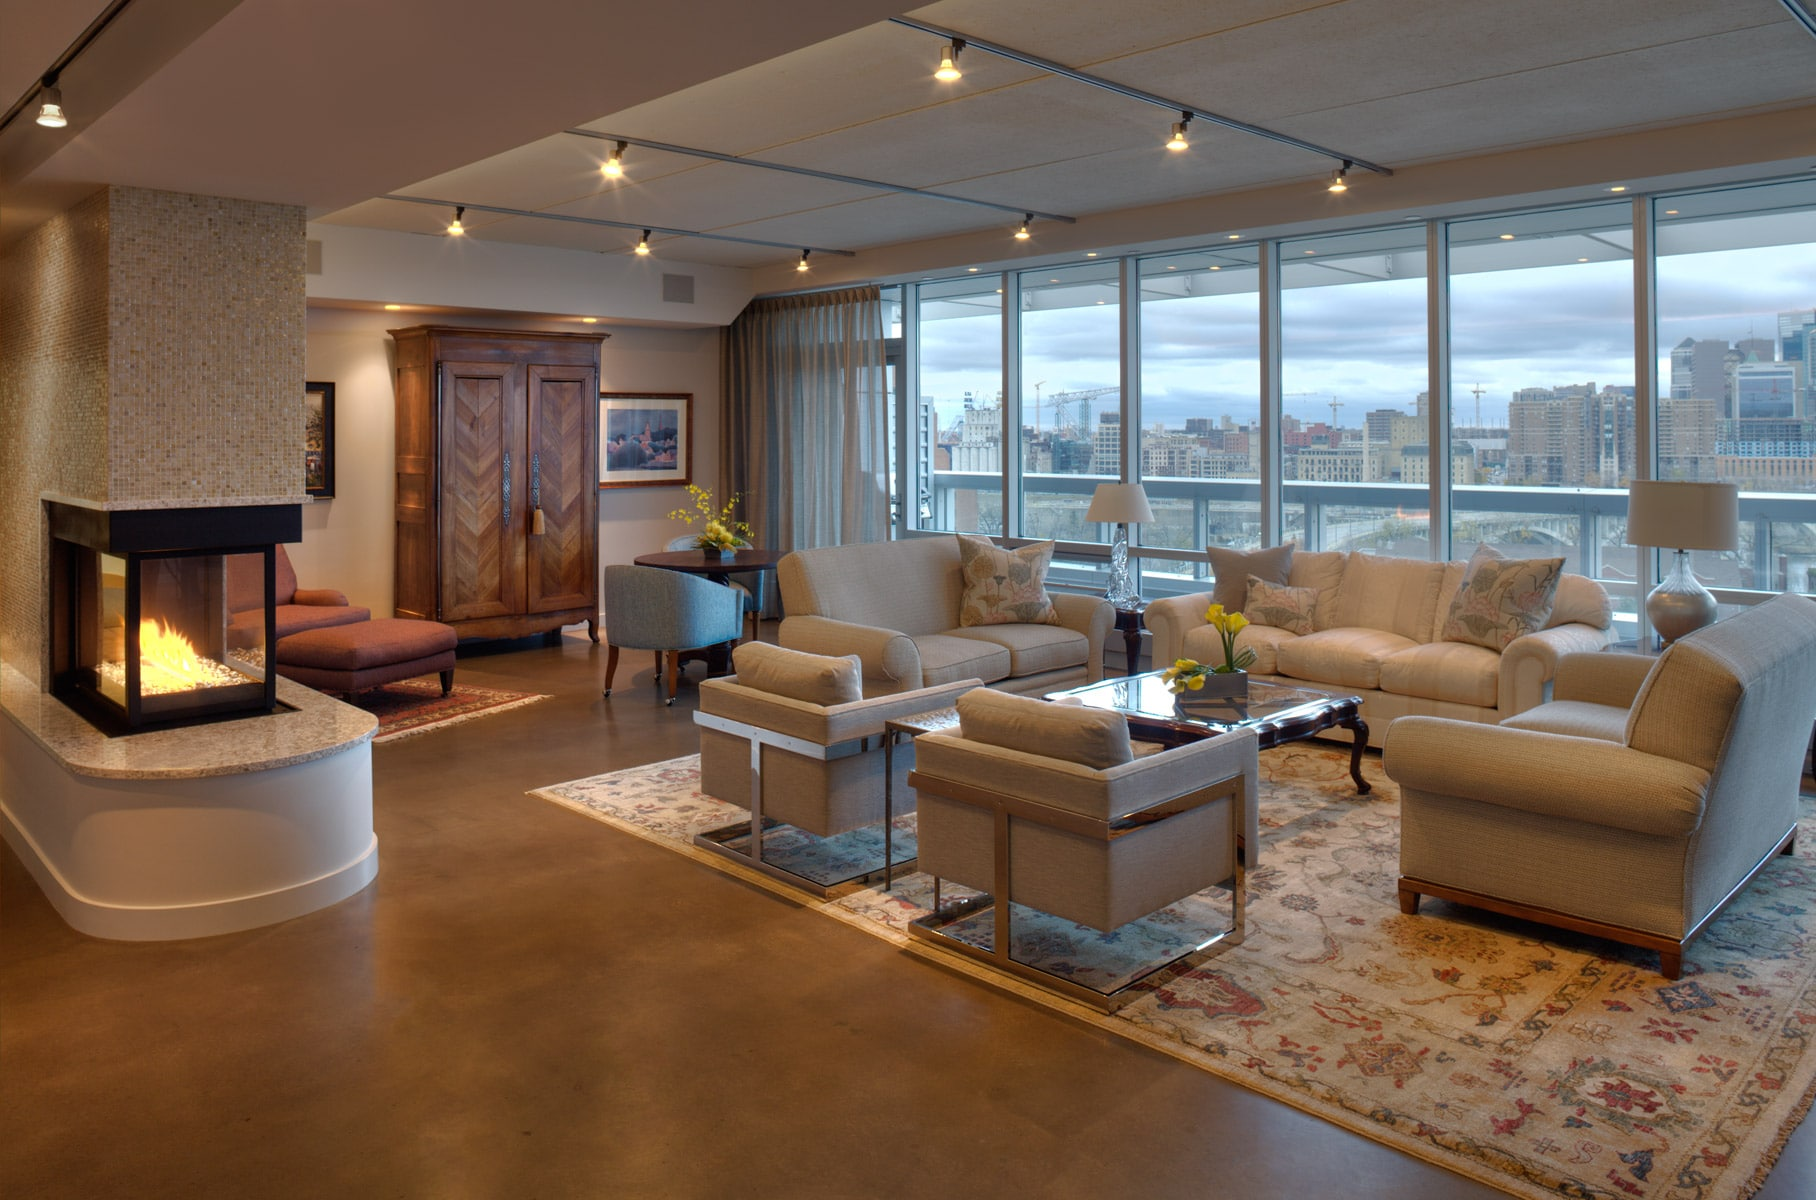 A Good Suggestion For Interior Design Contractor Is To Be Aware Of The  Lighting Level Within A Room. When Designing A Windowless Room, Use Light  Shades Of ...